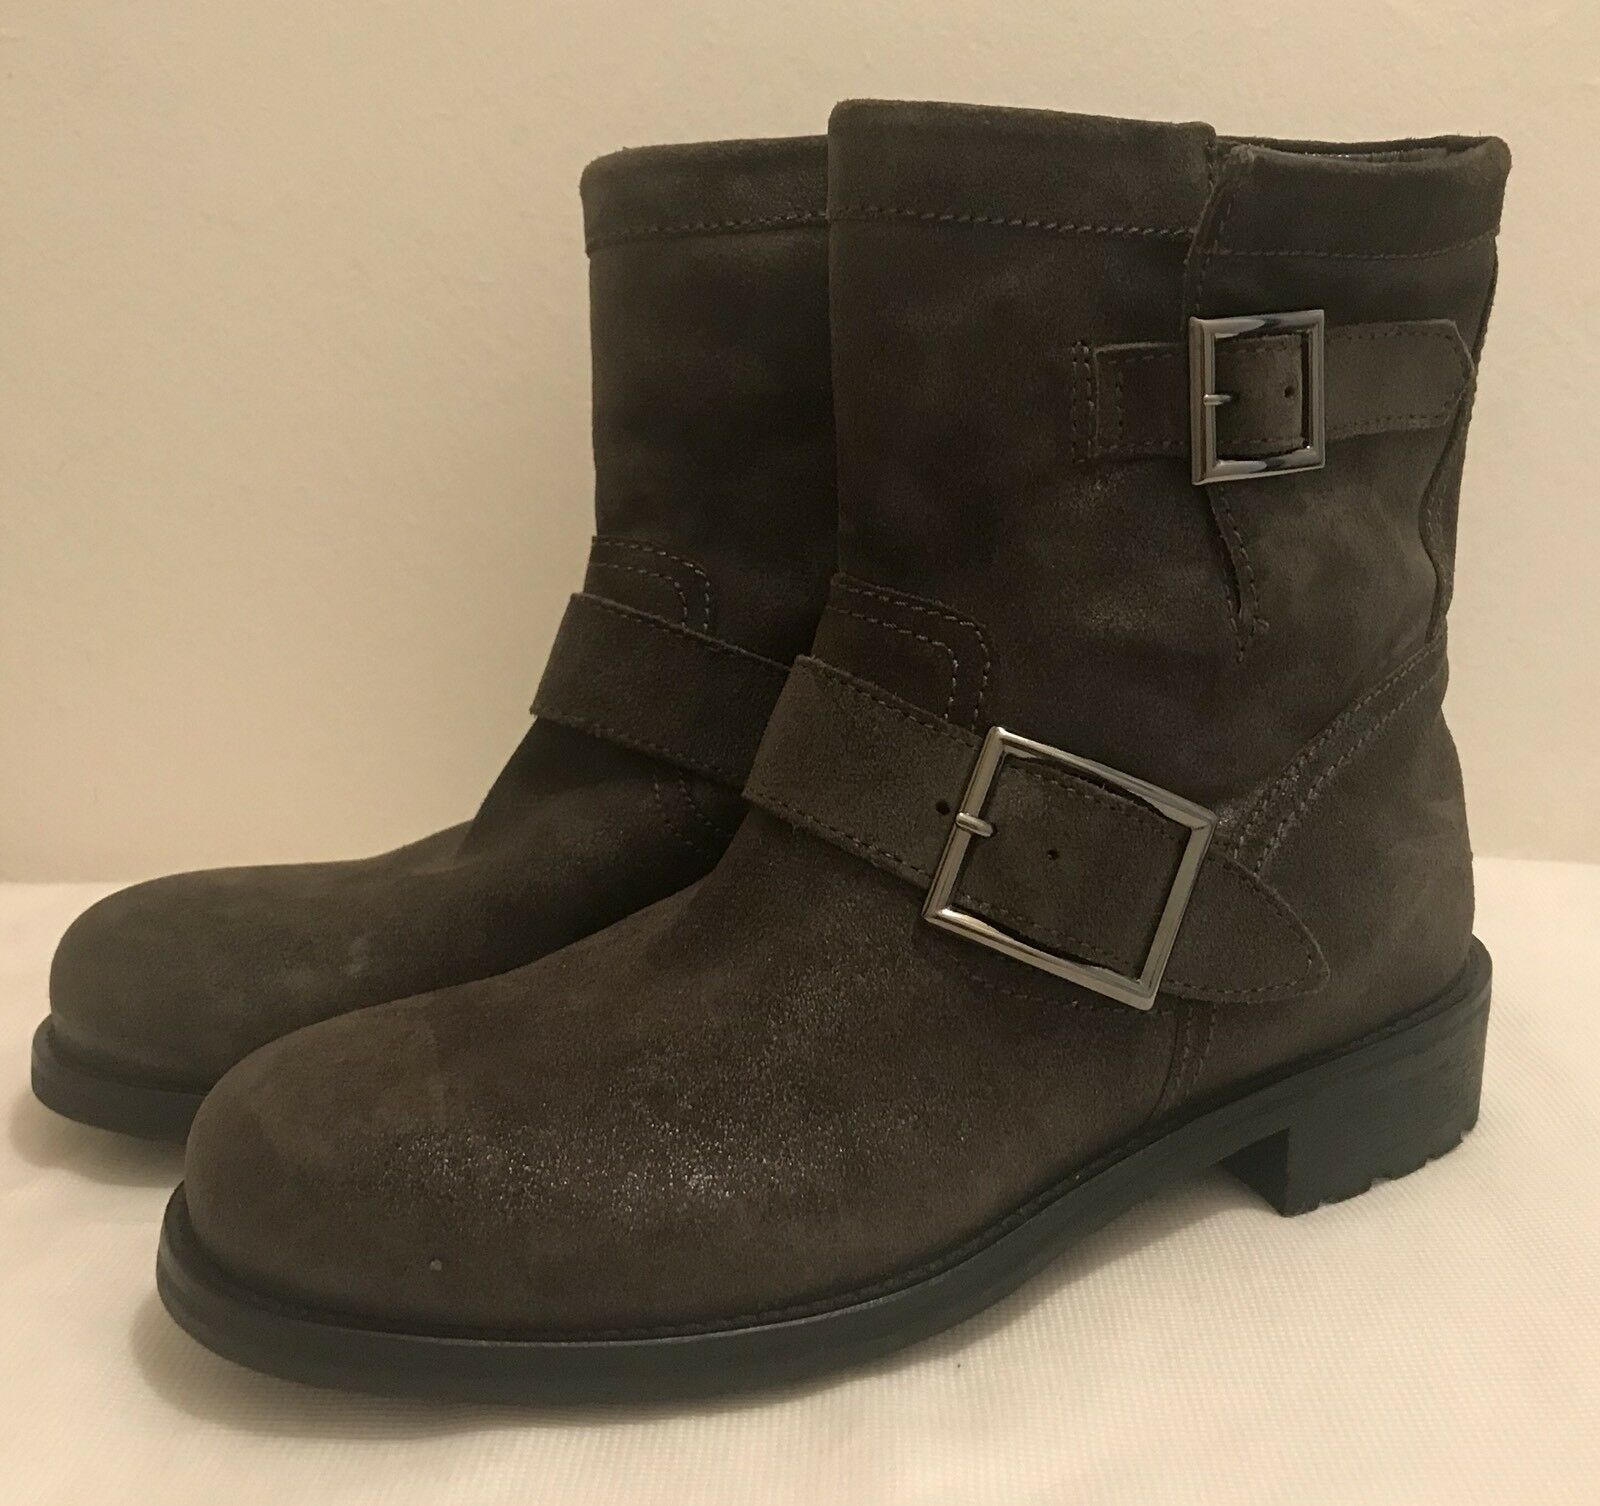 Jimmy Choo Mist Shimmered Suede Youth Youth Youth Buckled Biker Boots NWOB 842761